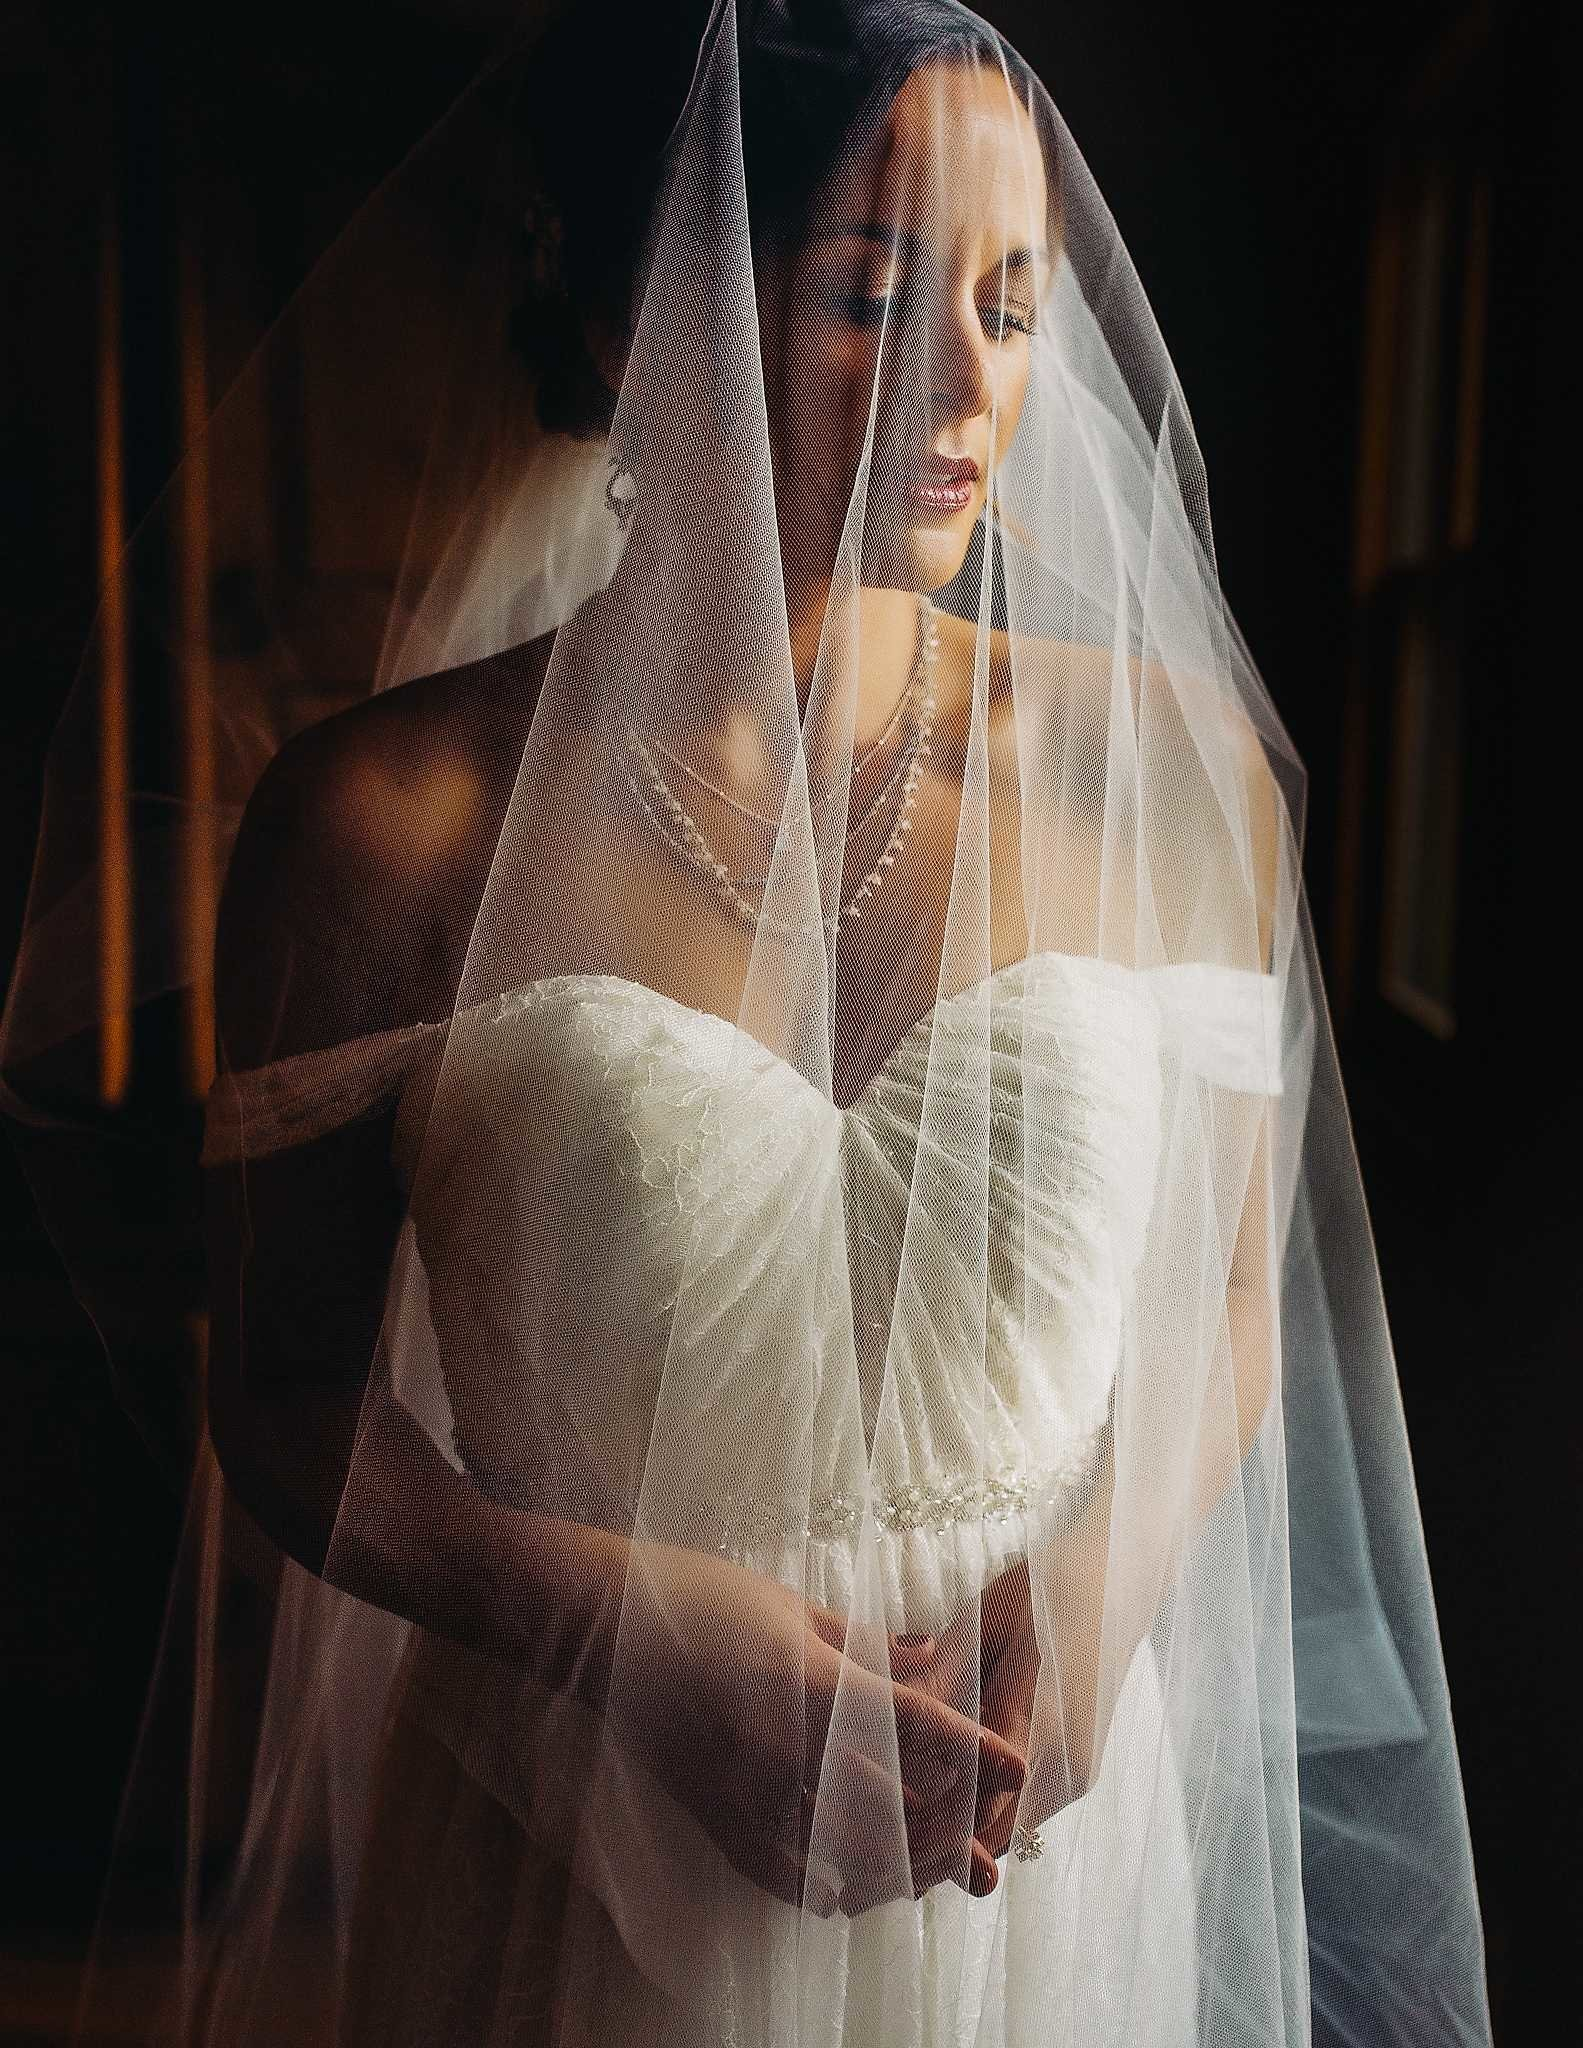 Bride-with-veil-classic-portrait-charleston-Wedding-Photographers-in-Charleston-SC-Fia-Forever-Photography